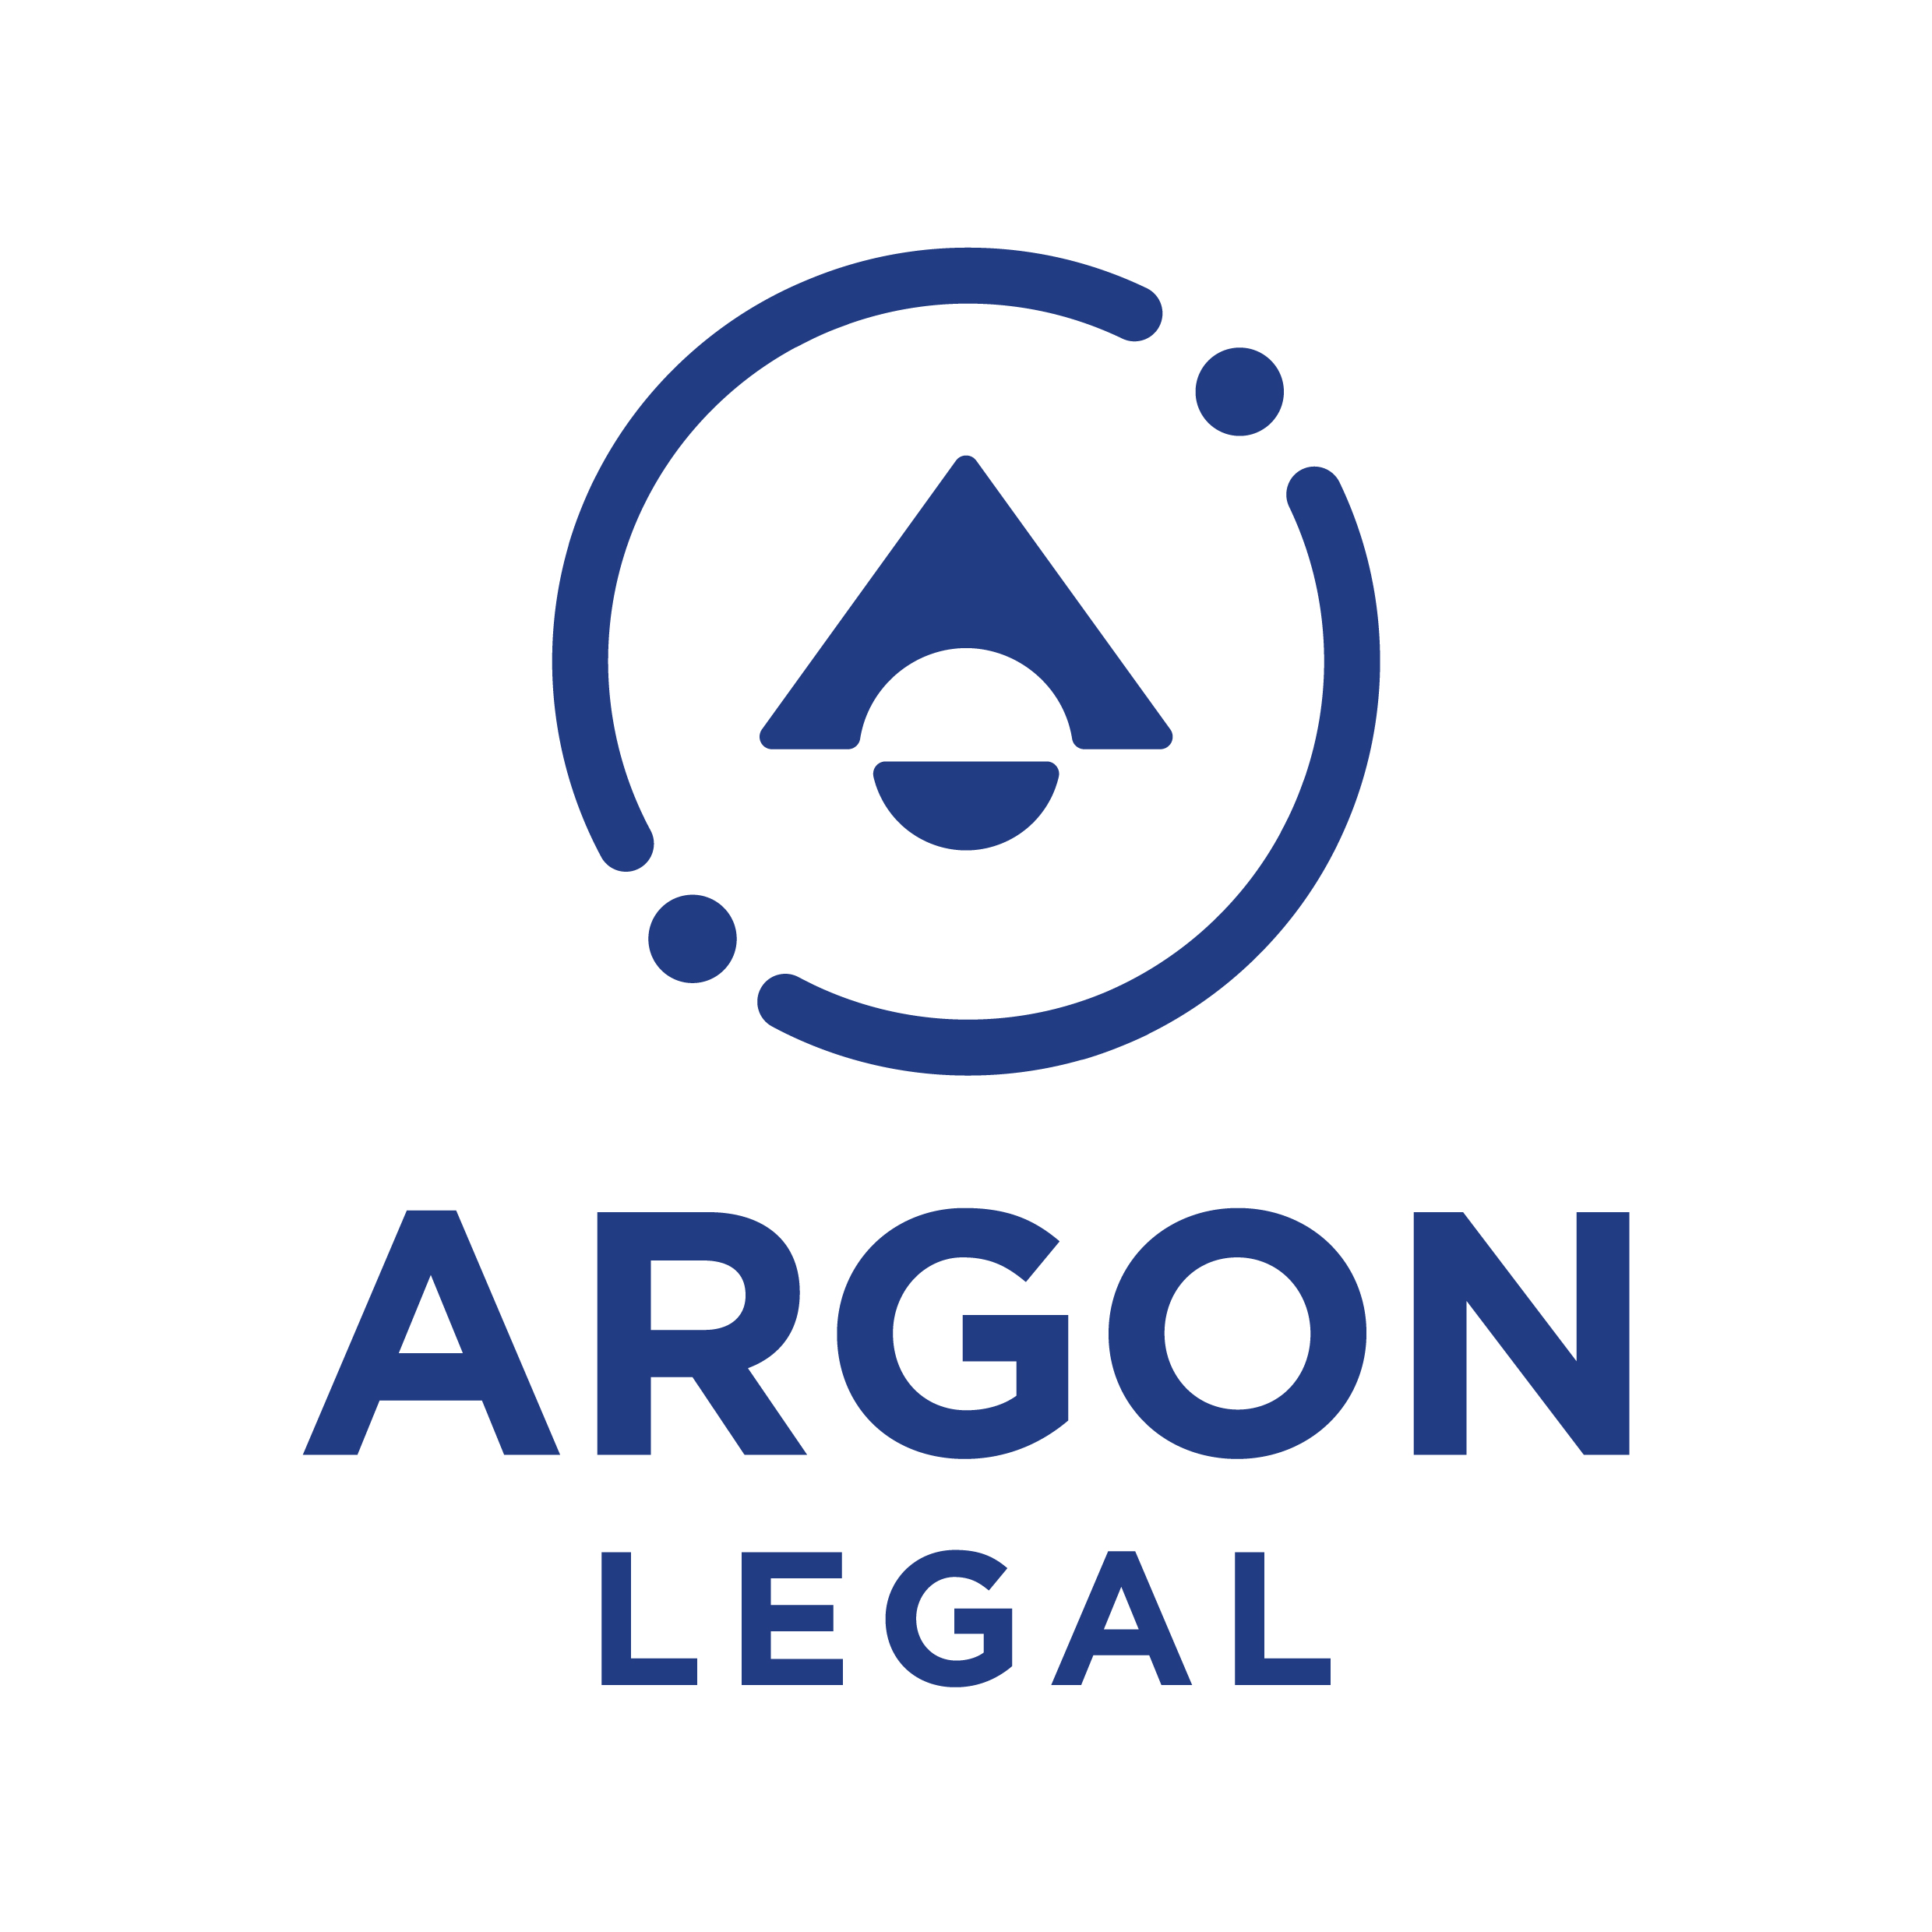 Argon Legal, http://iblc.com/images/firmlogos/Argon.jpg Logo